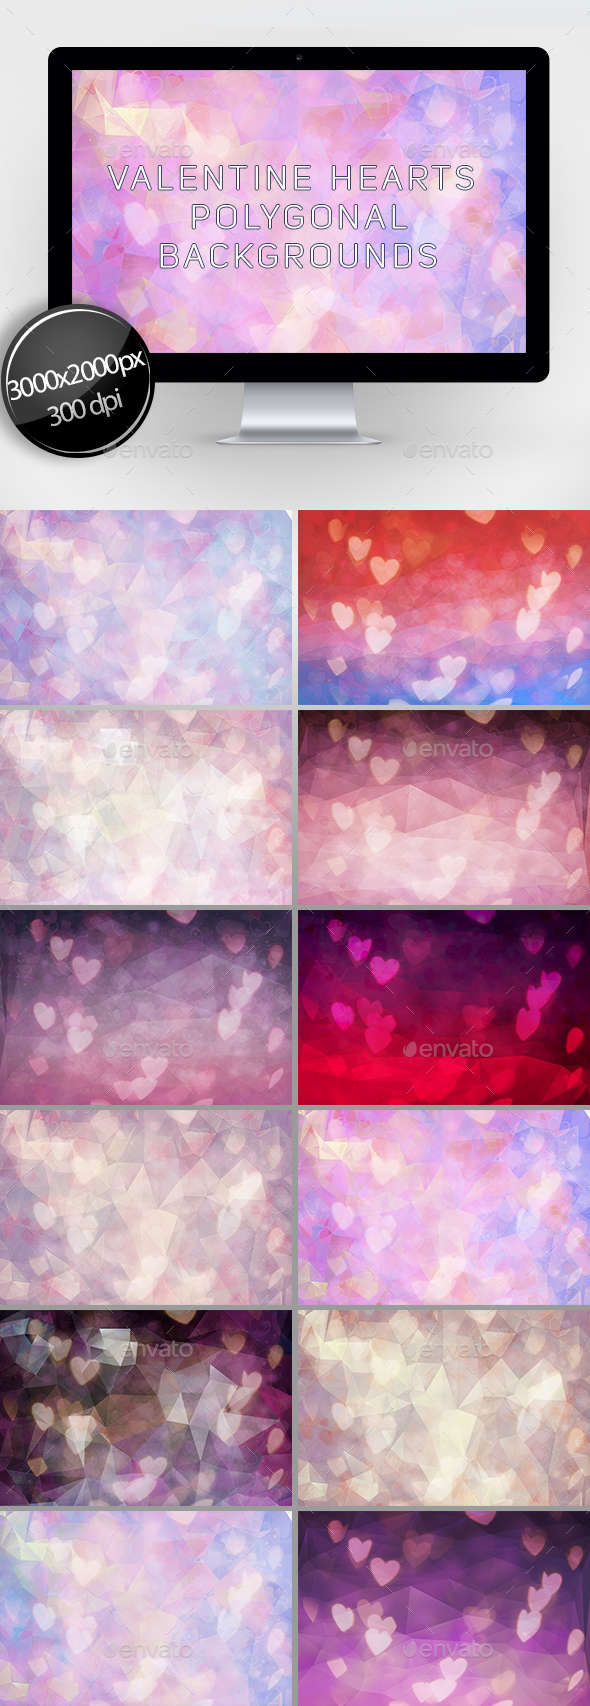 Valentine Hearts Polygonal Backgrounds - Abstract Backgrounds